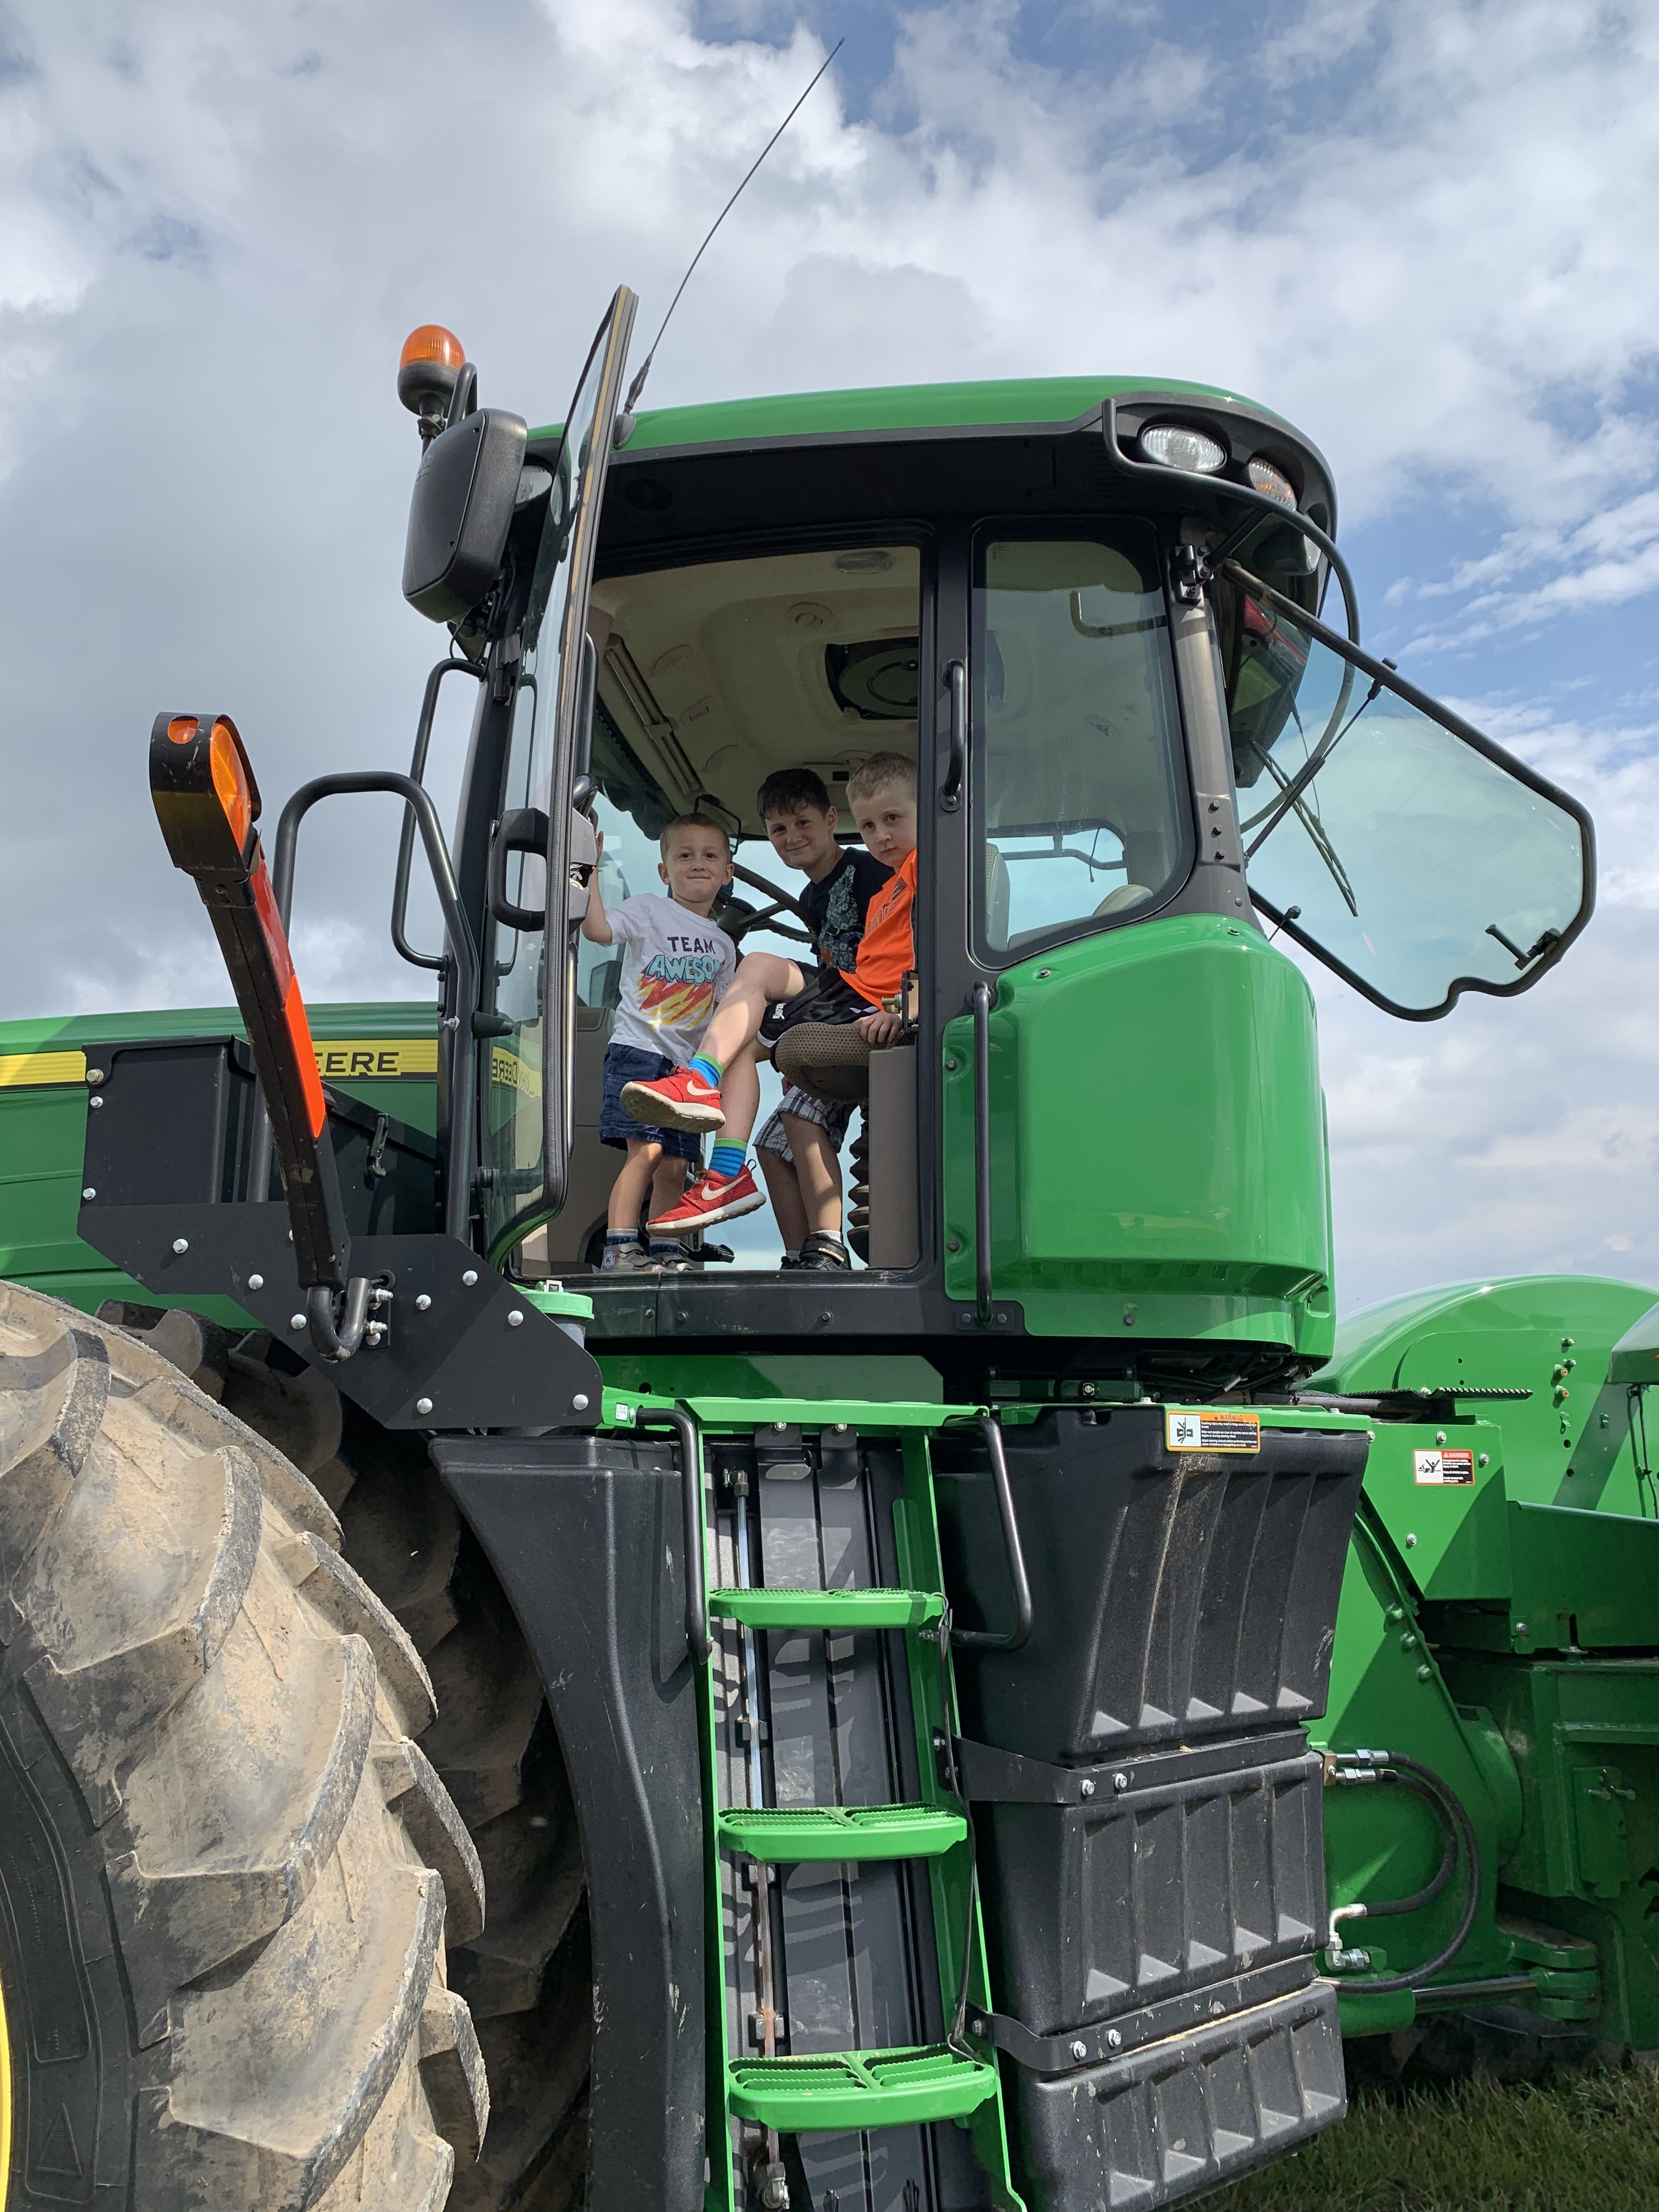 Kids in tractor